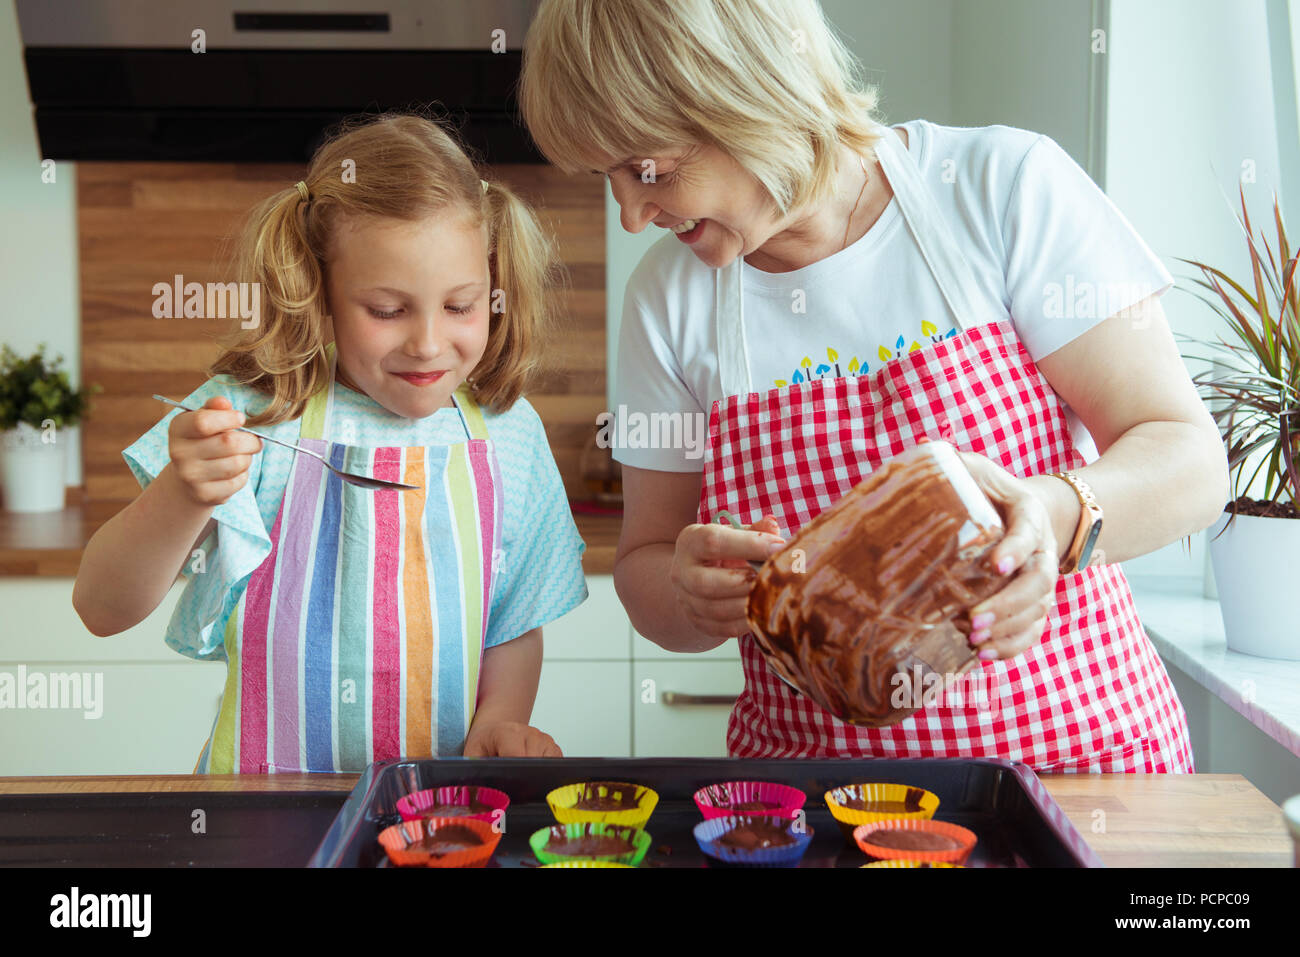 Portrait of happy beautiful grandmother and her granddaughter in modern kitchen - Stock Image